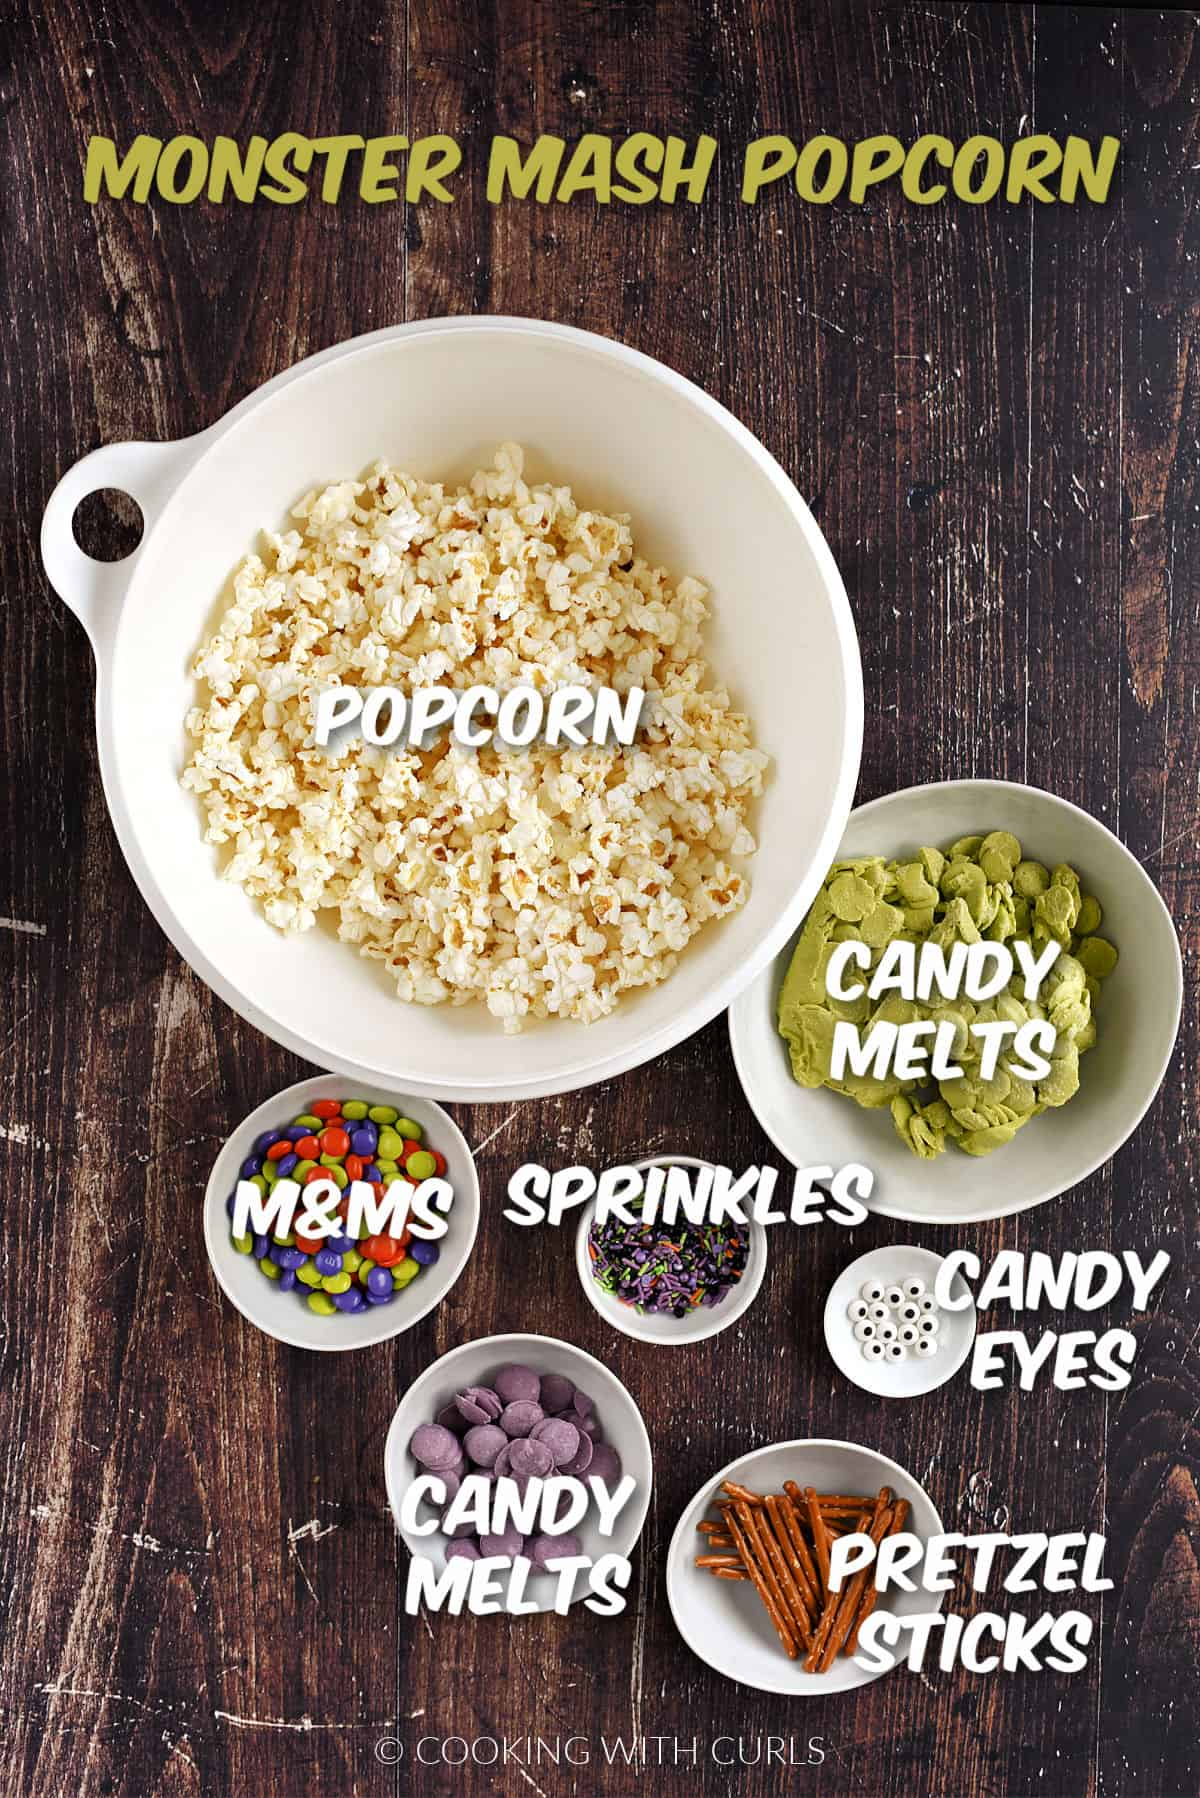 Popped popcorn, green and purple candy melts, m&ms, sprinkles, candy eyes and pretzel sticks.